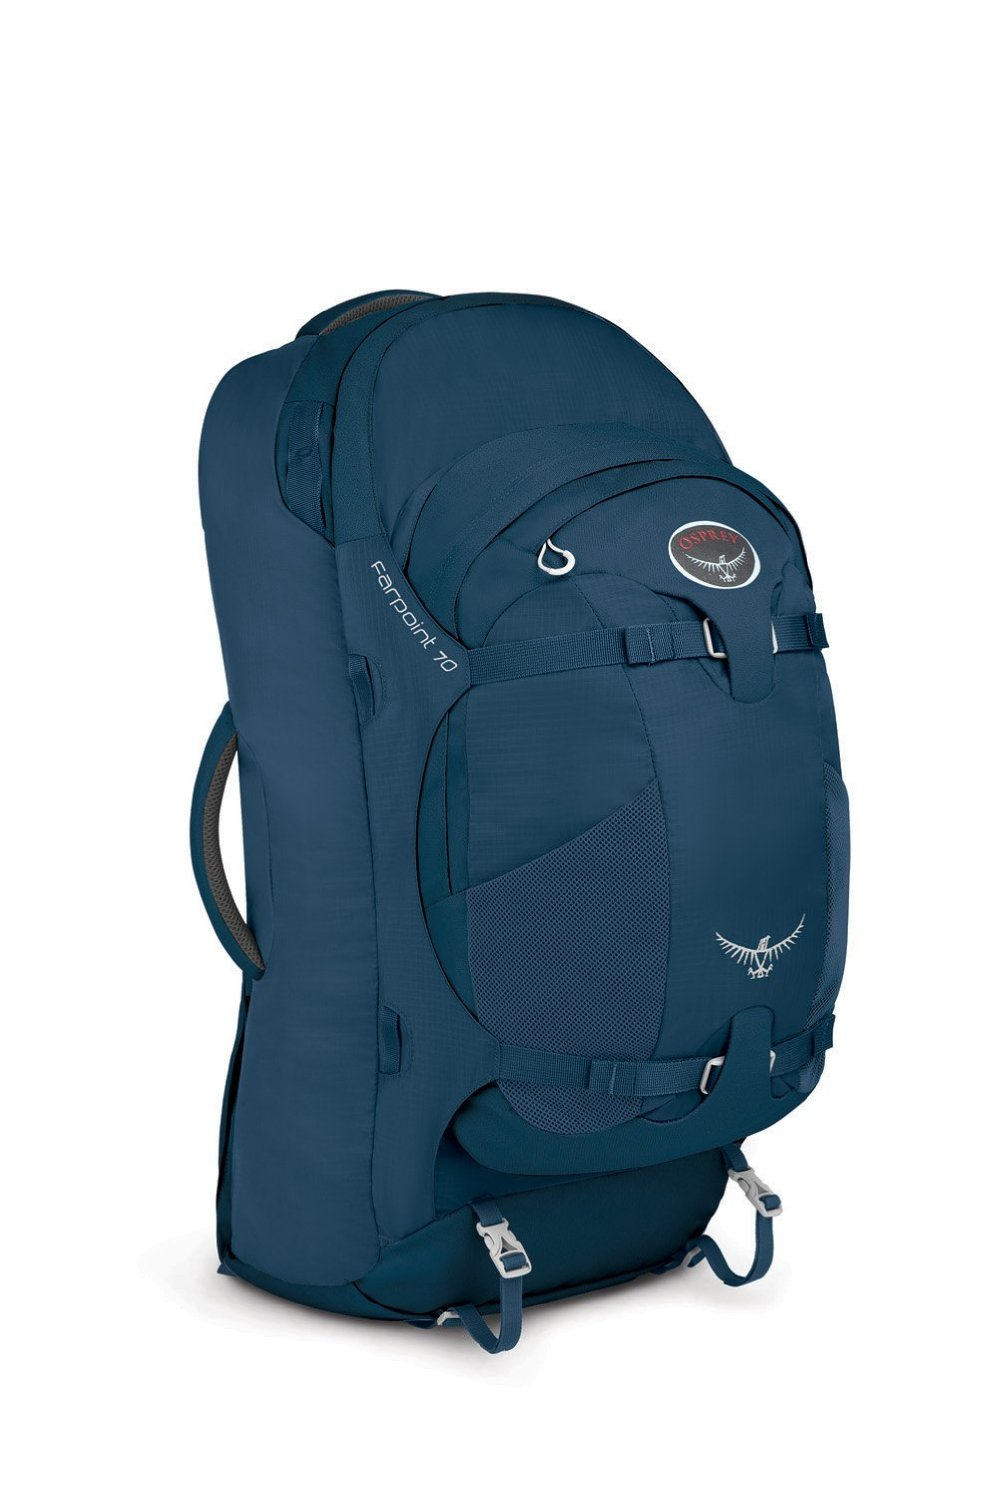 How to Choose a Travel Backpack: 3 Vital Questions ...